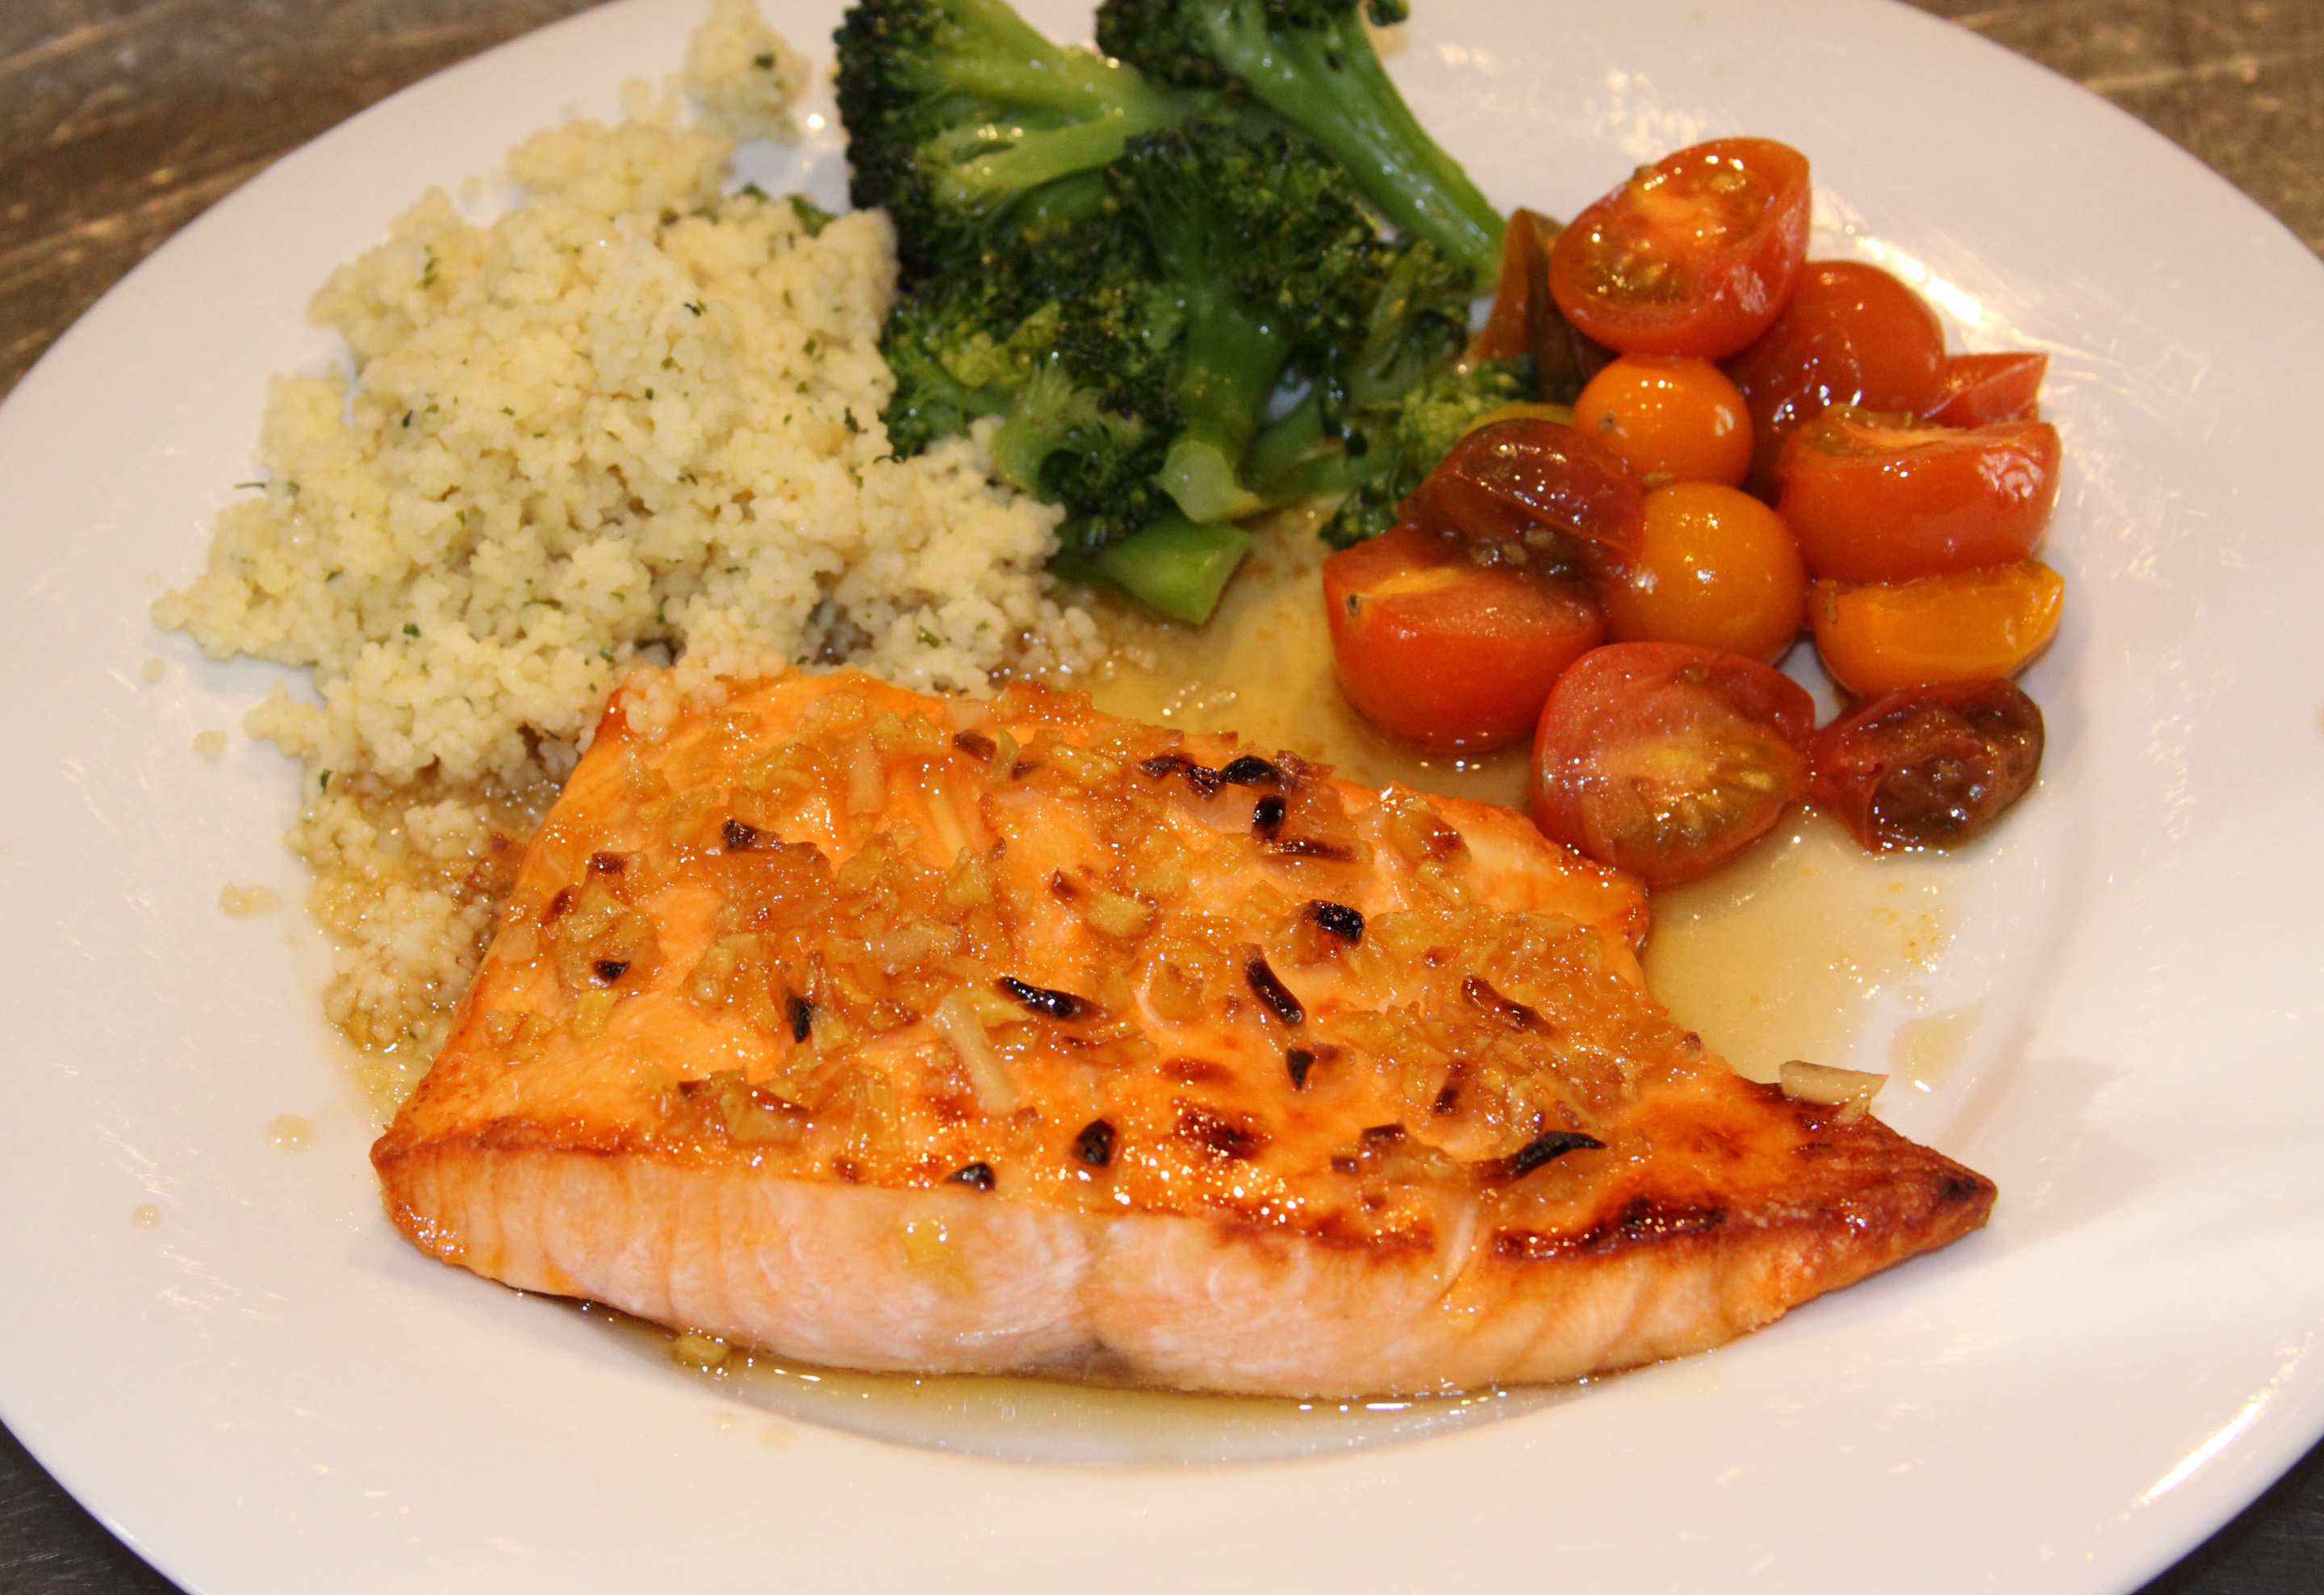 Broiled Salmon with Spicy Maple Basting Sauce